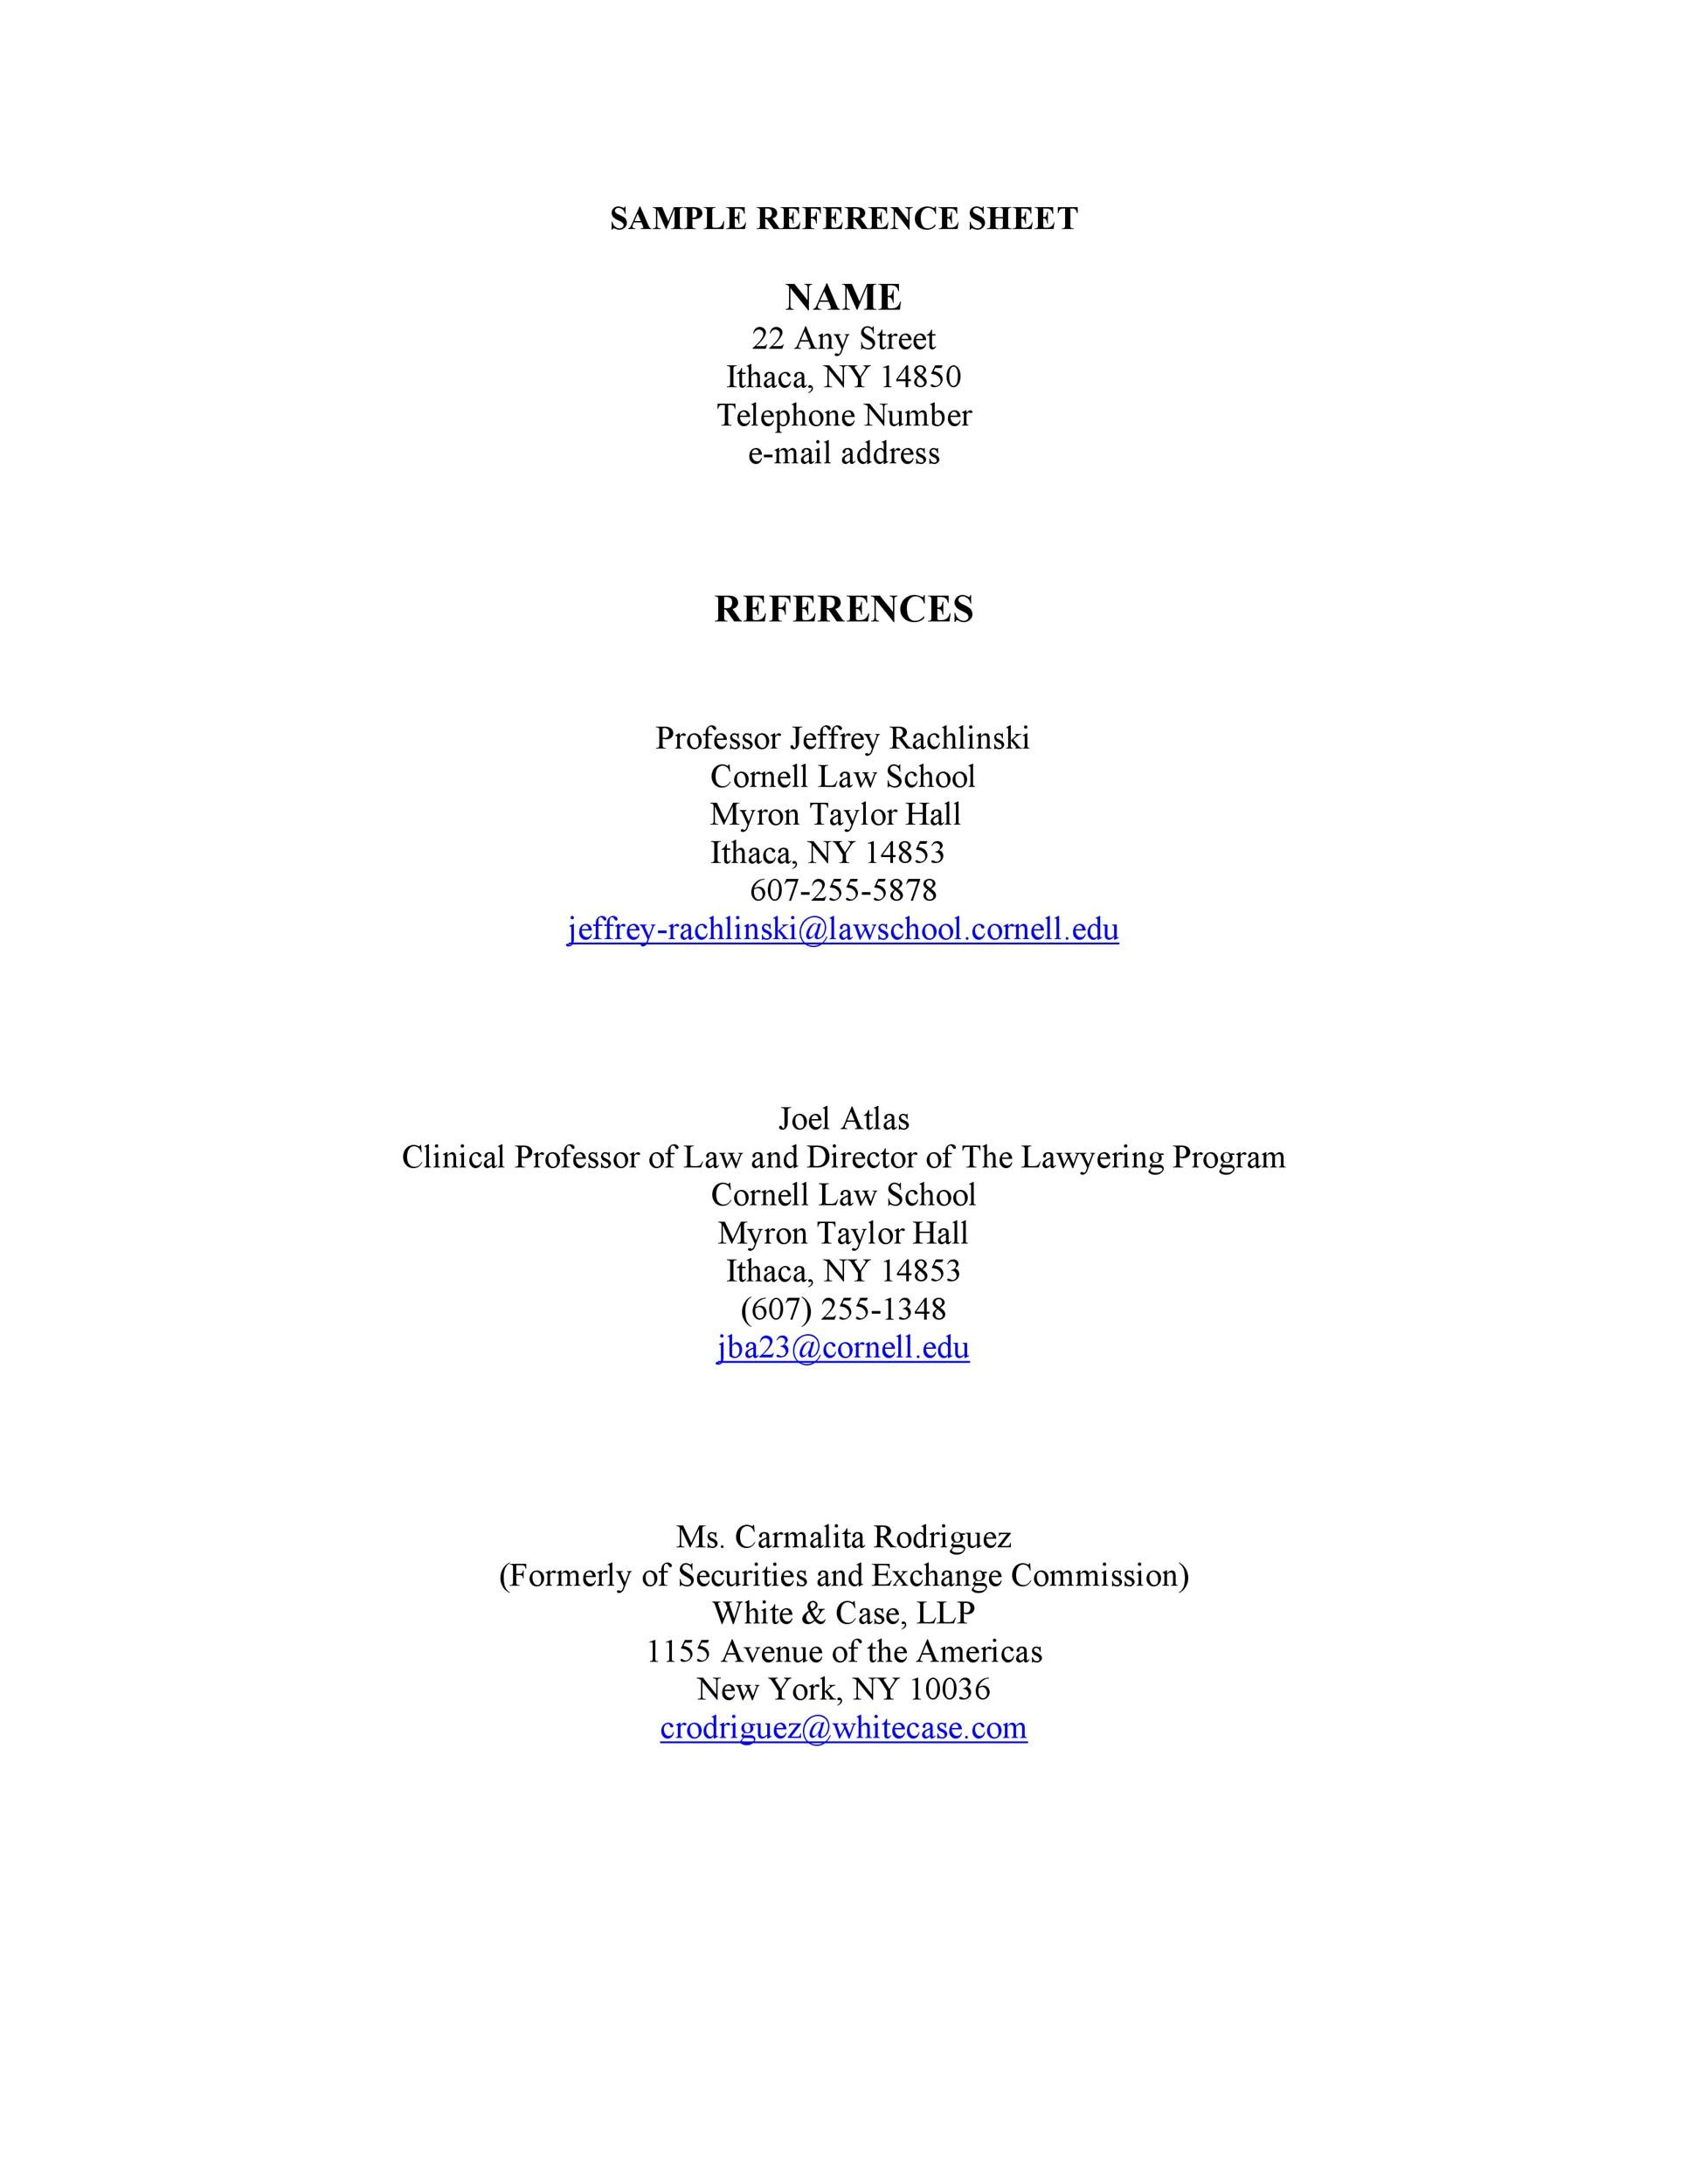 40 Professional Reference Page  Sheet Templates  Template Lab